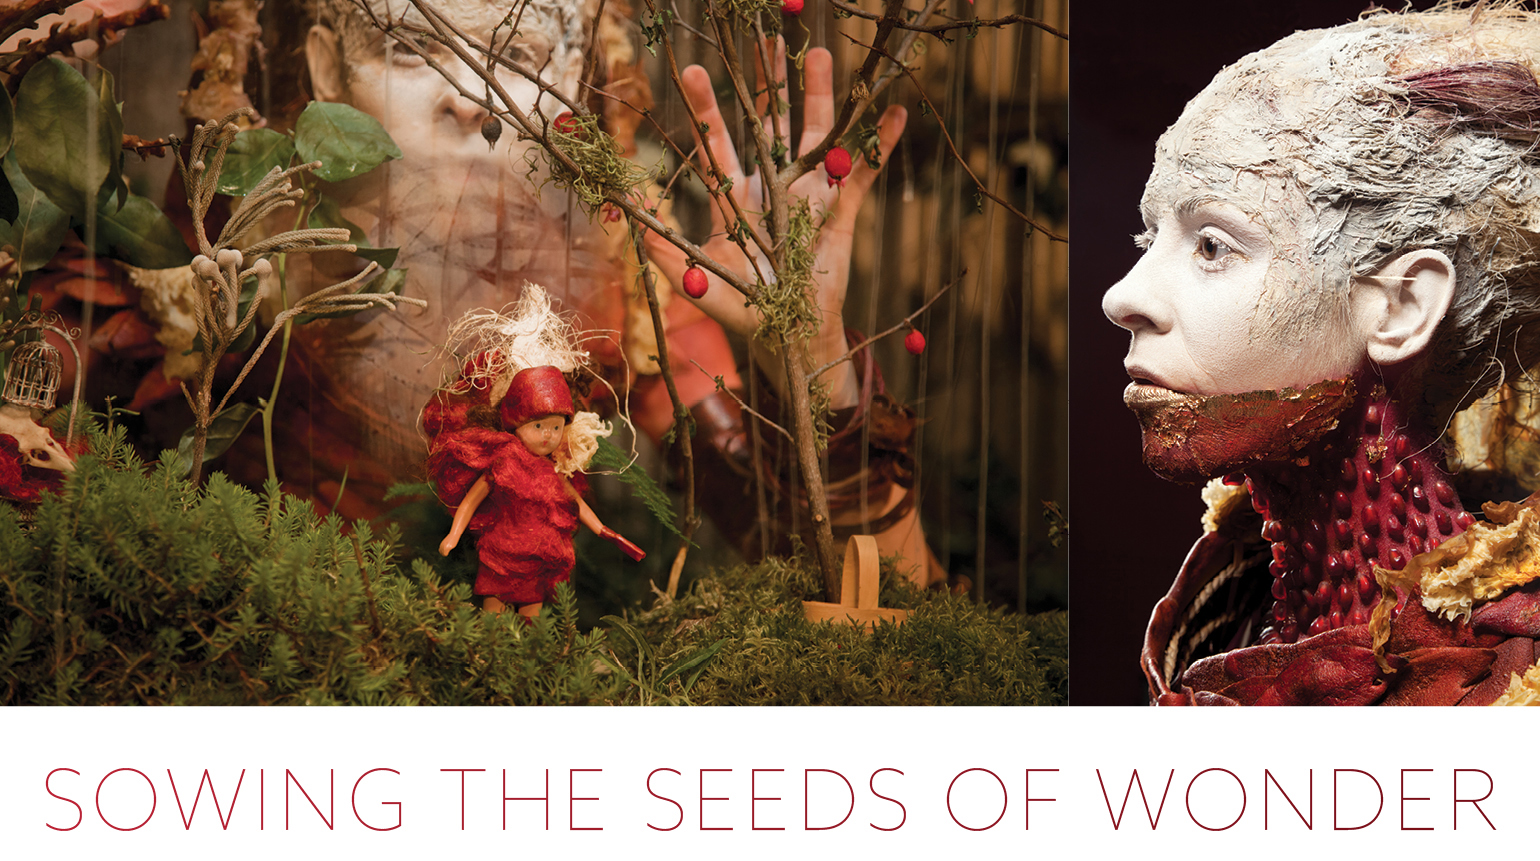 Sowing the Seeds of Wonder